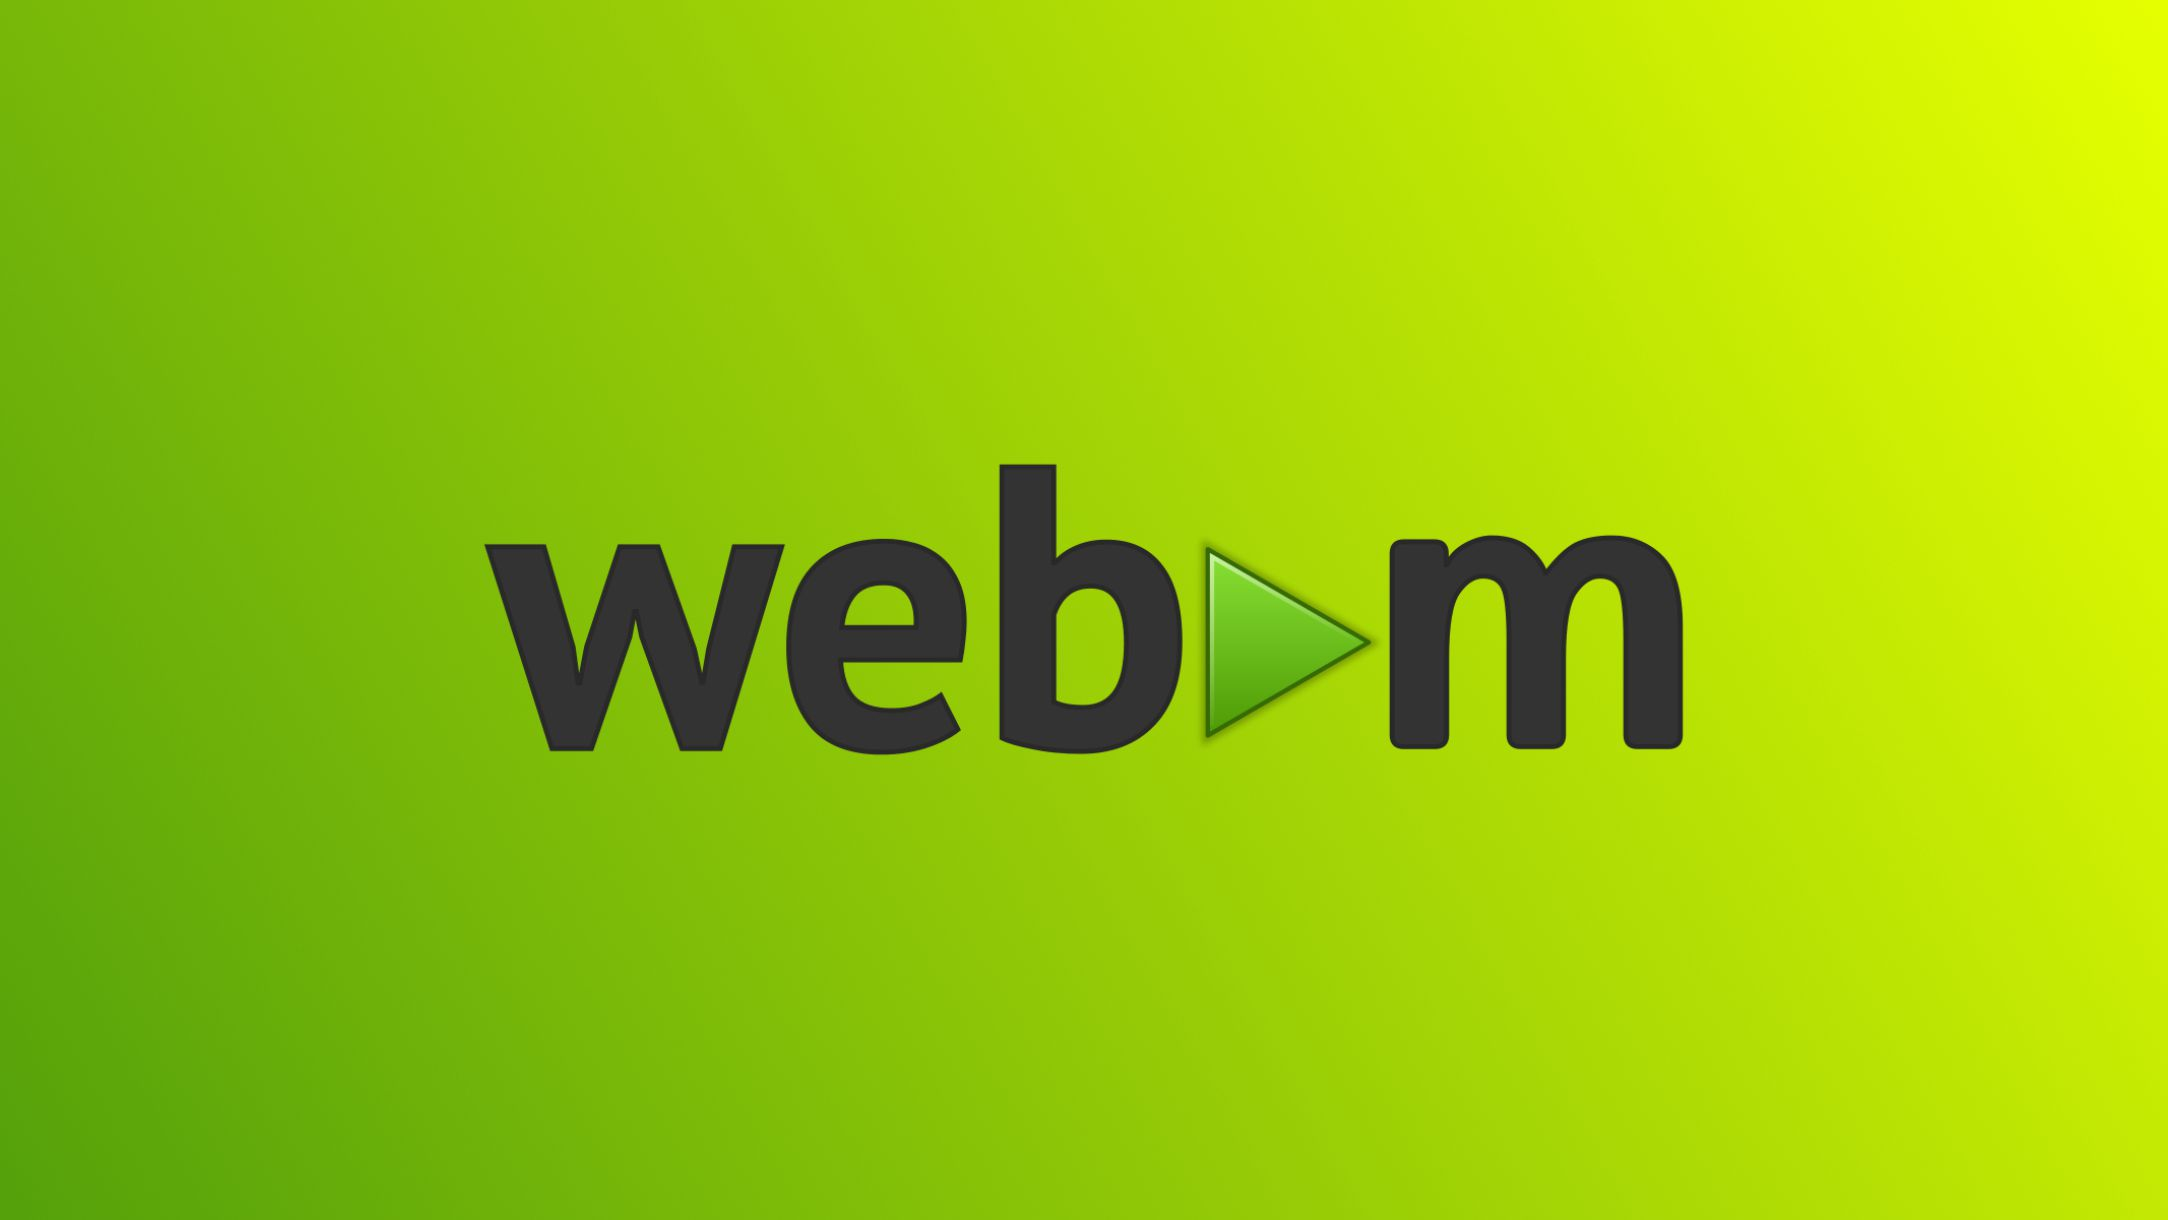 Safari for Mac to Support WebM Video Playback 11 Years After Its Launch